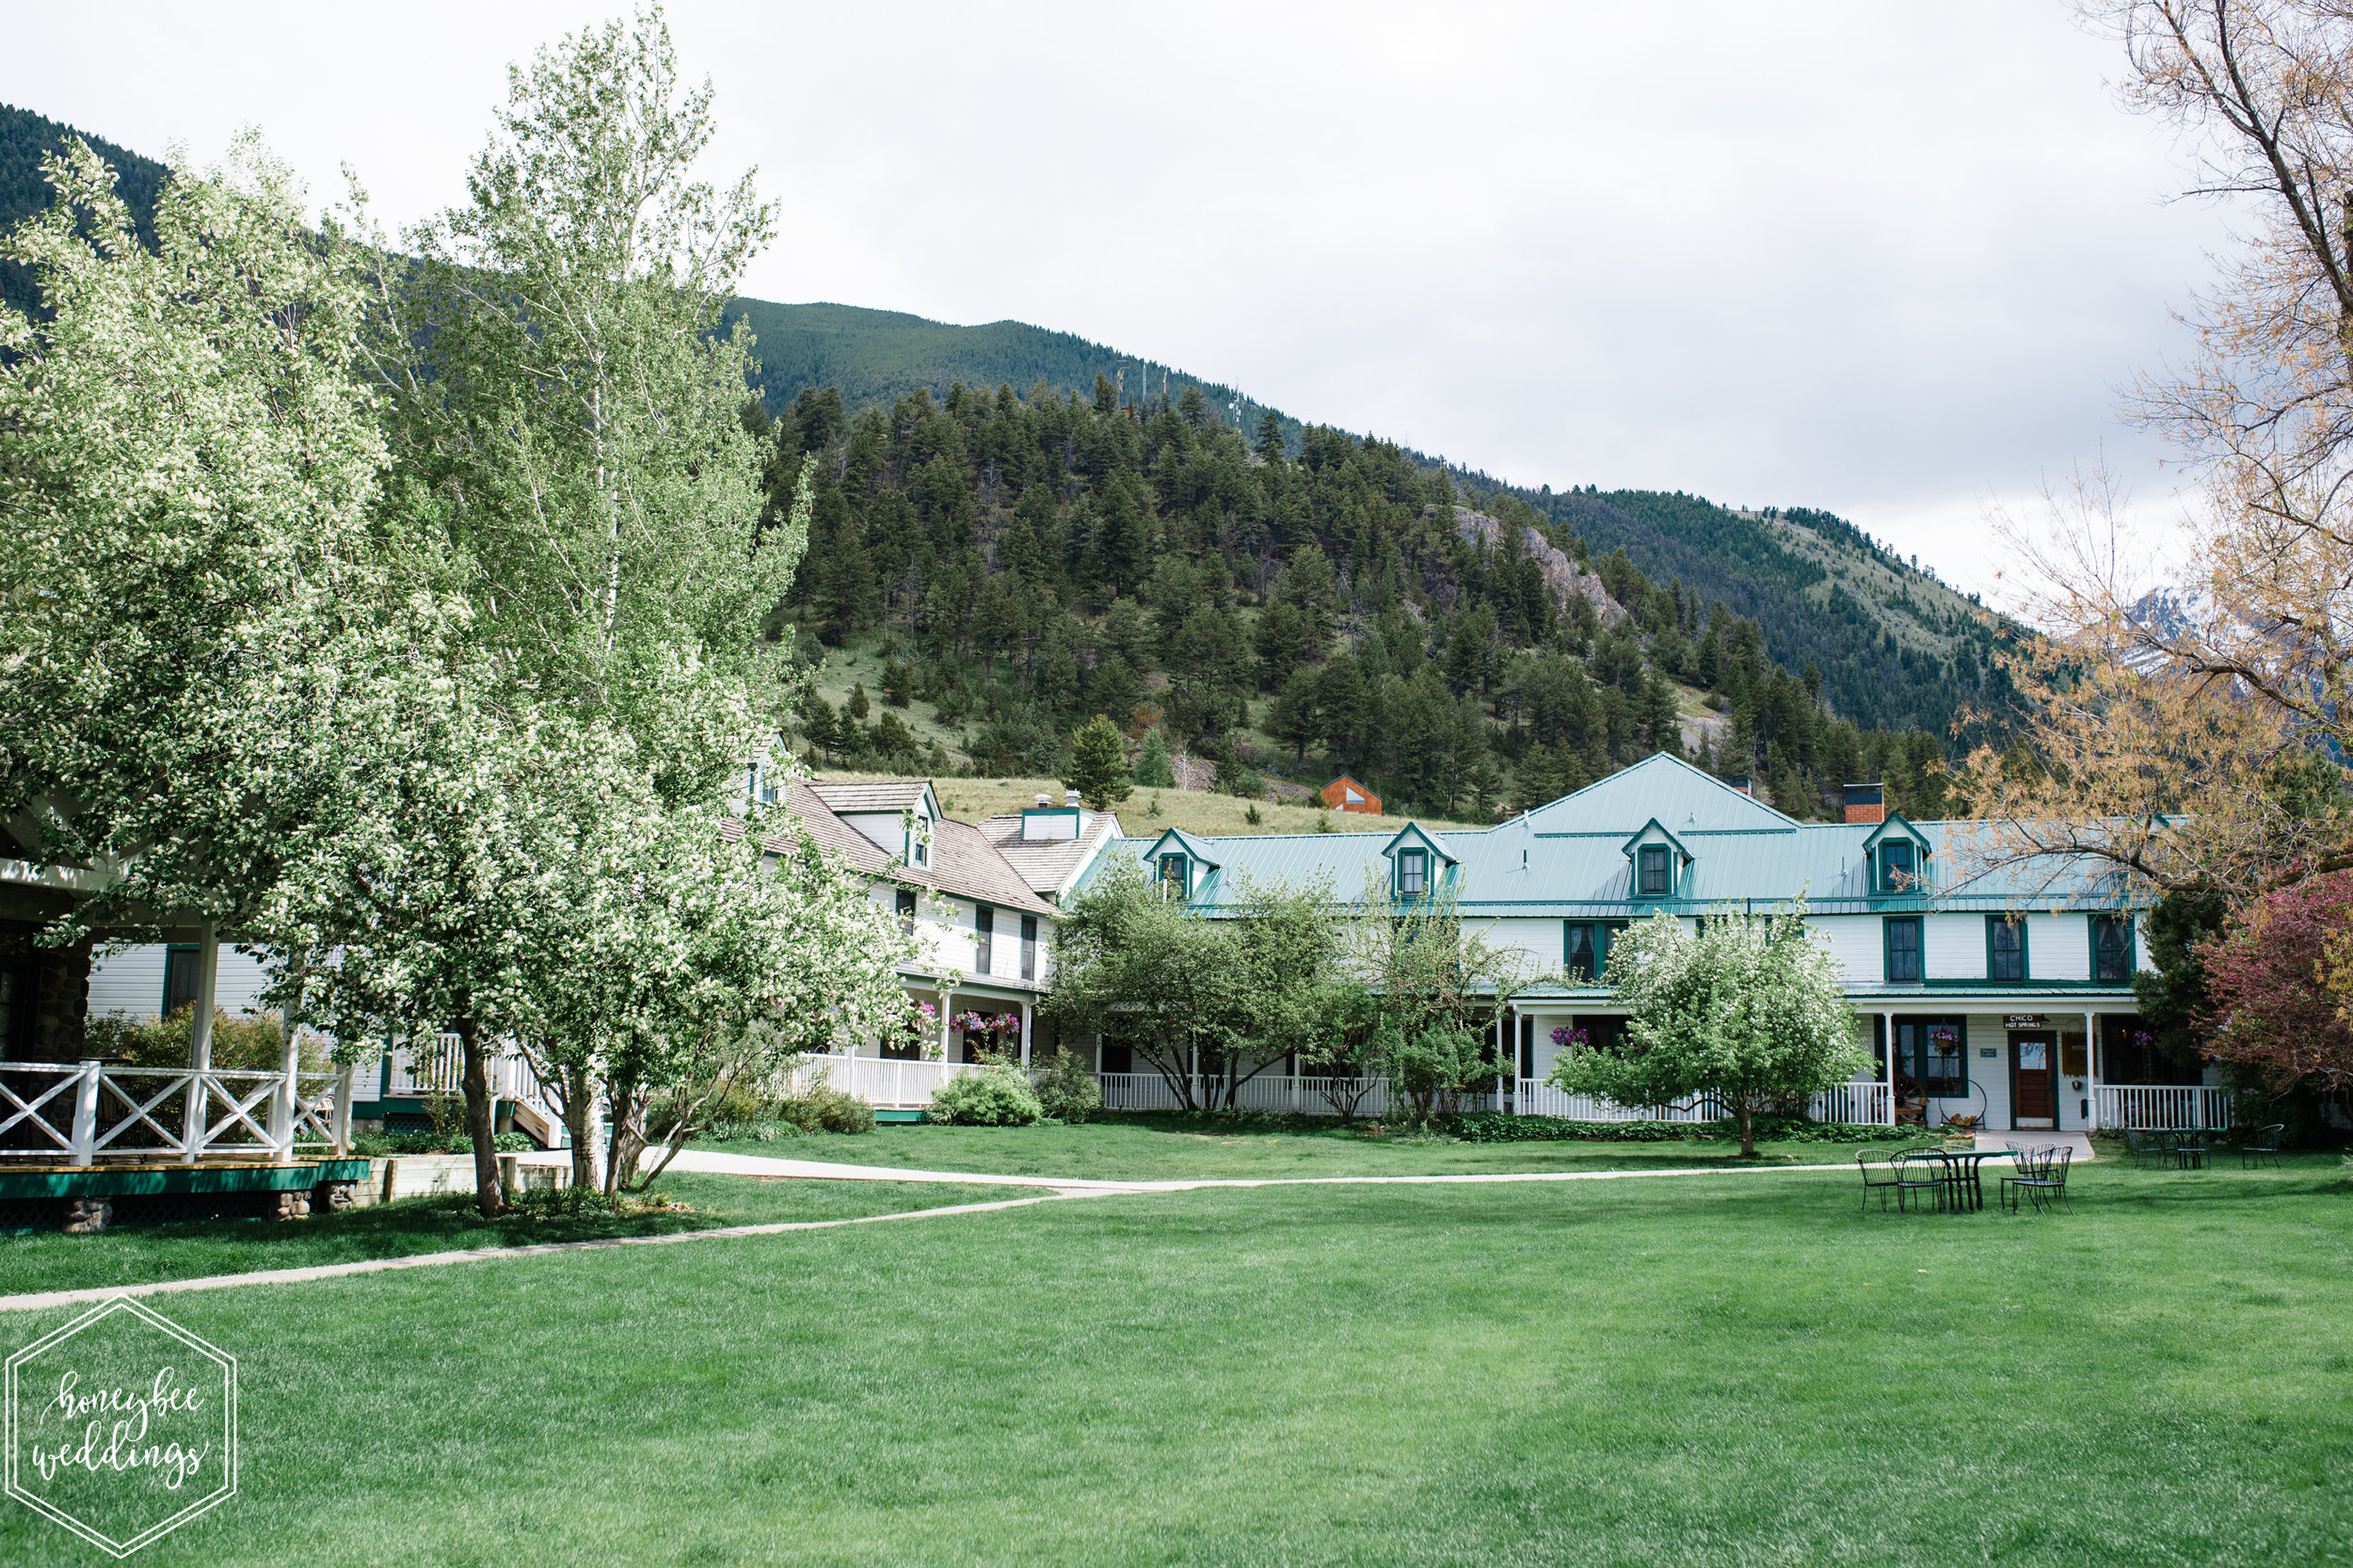 003Montana wedding photographer videographer_Chico hot springs wedding_Honeybee Weddings_Claudia & Bill_June 03, 2019-28.jpg